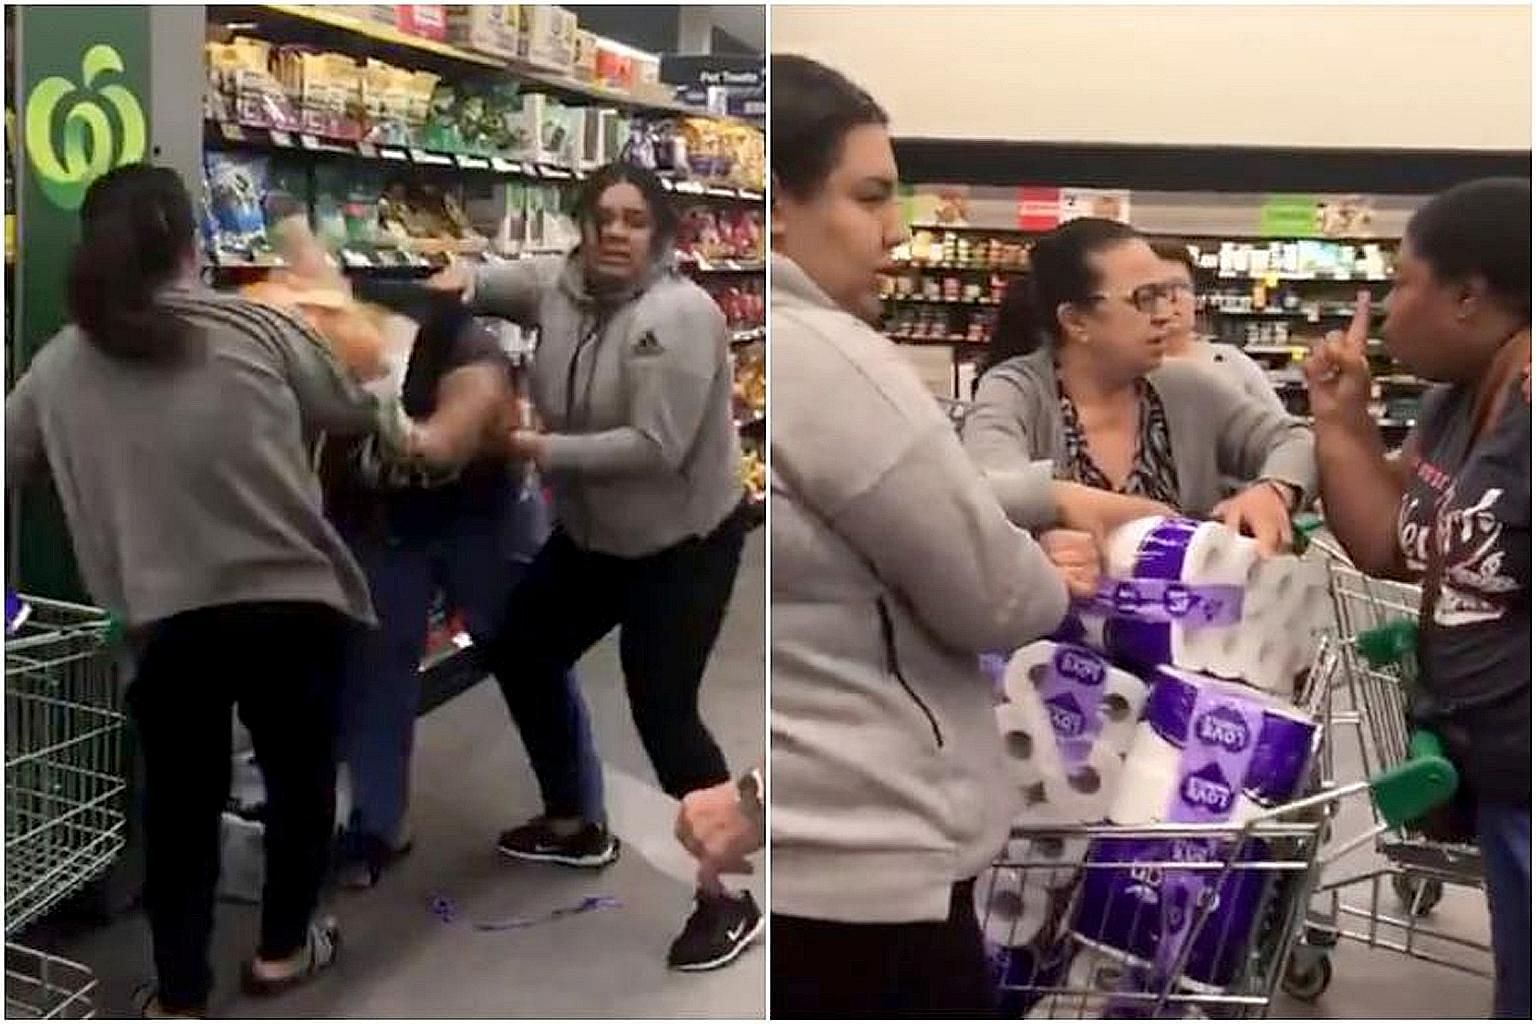 A video widely shared online shows three women pulling one another's hair and screaming as they struggle over a large pack of toilet rolls in the aisle of a grocery store in Sydney.